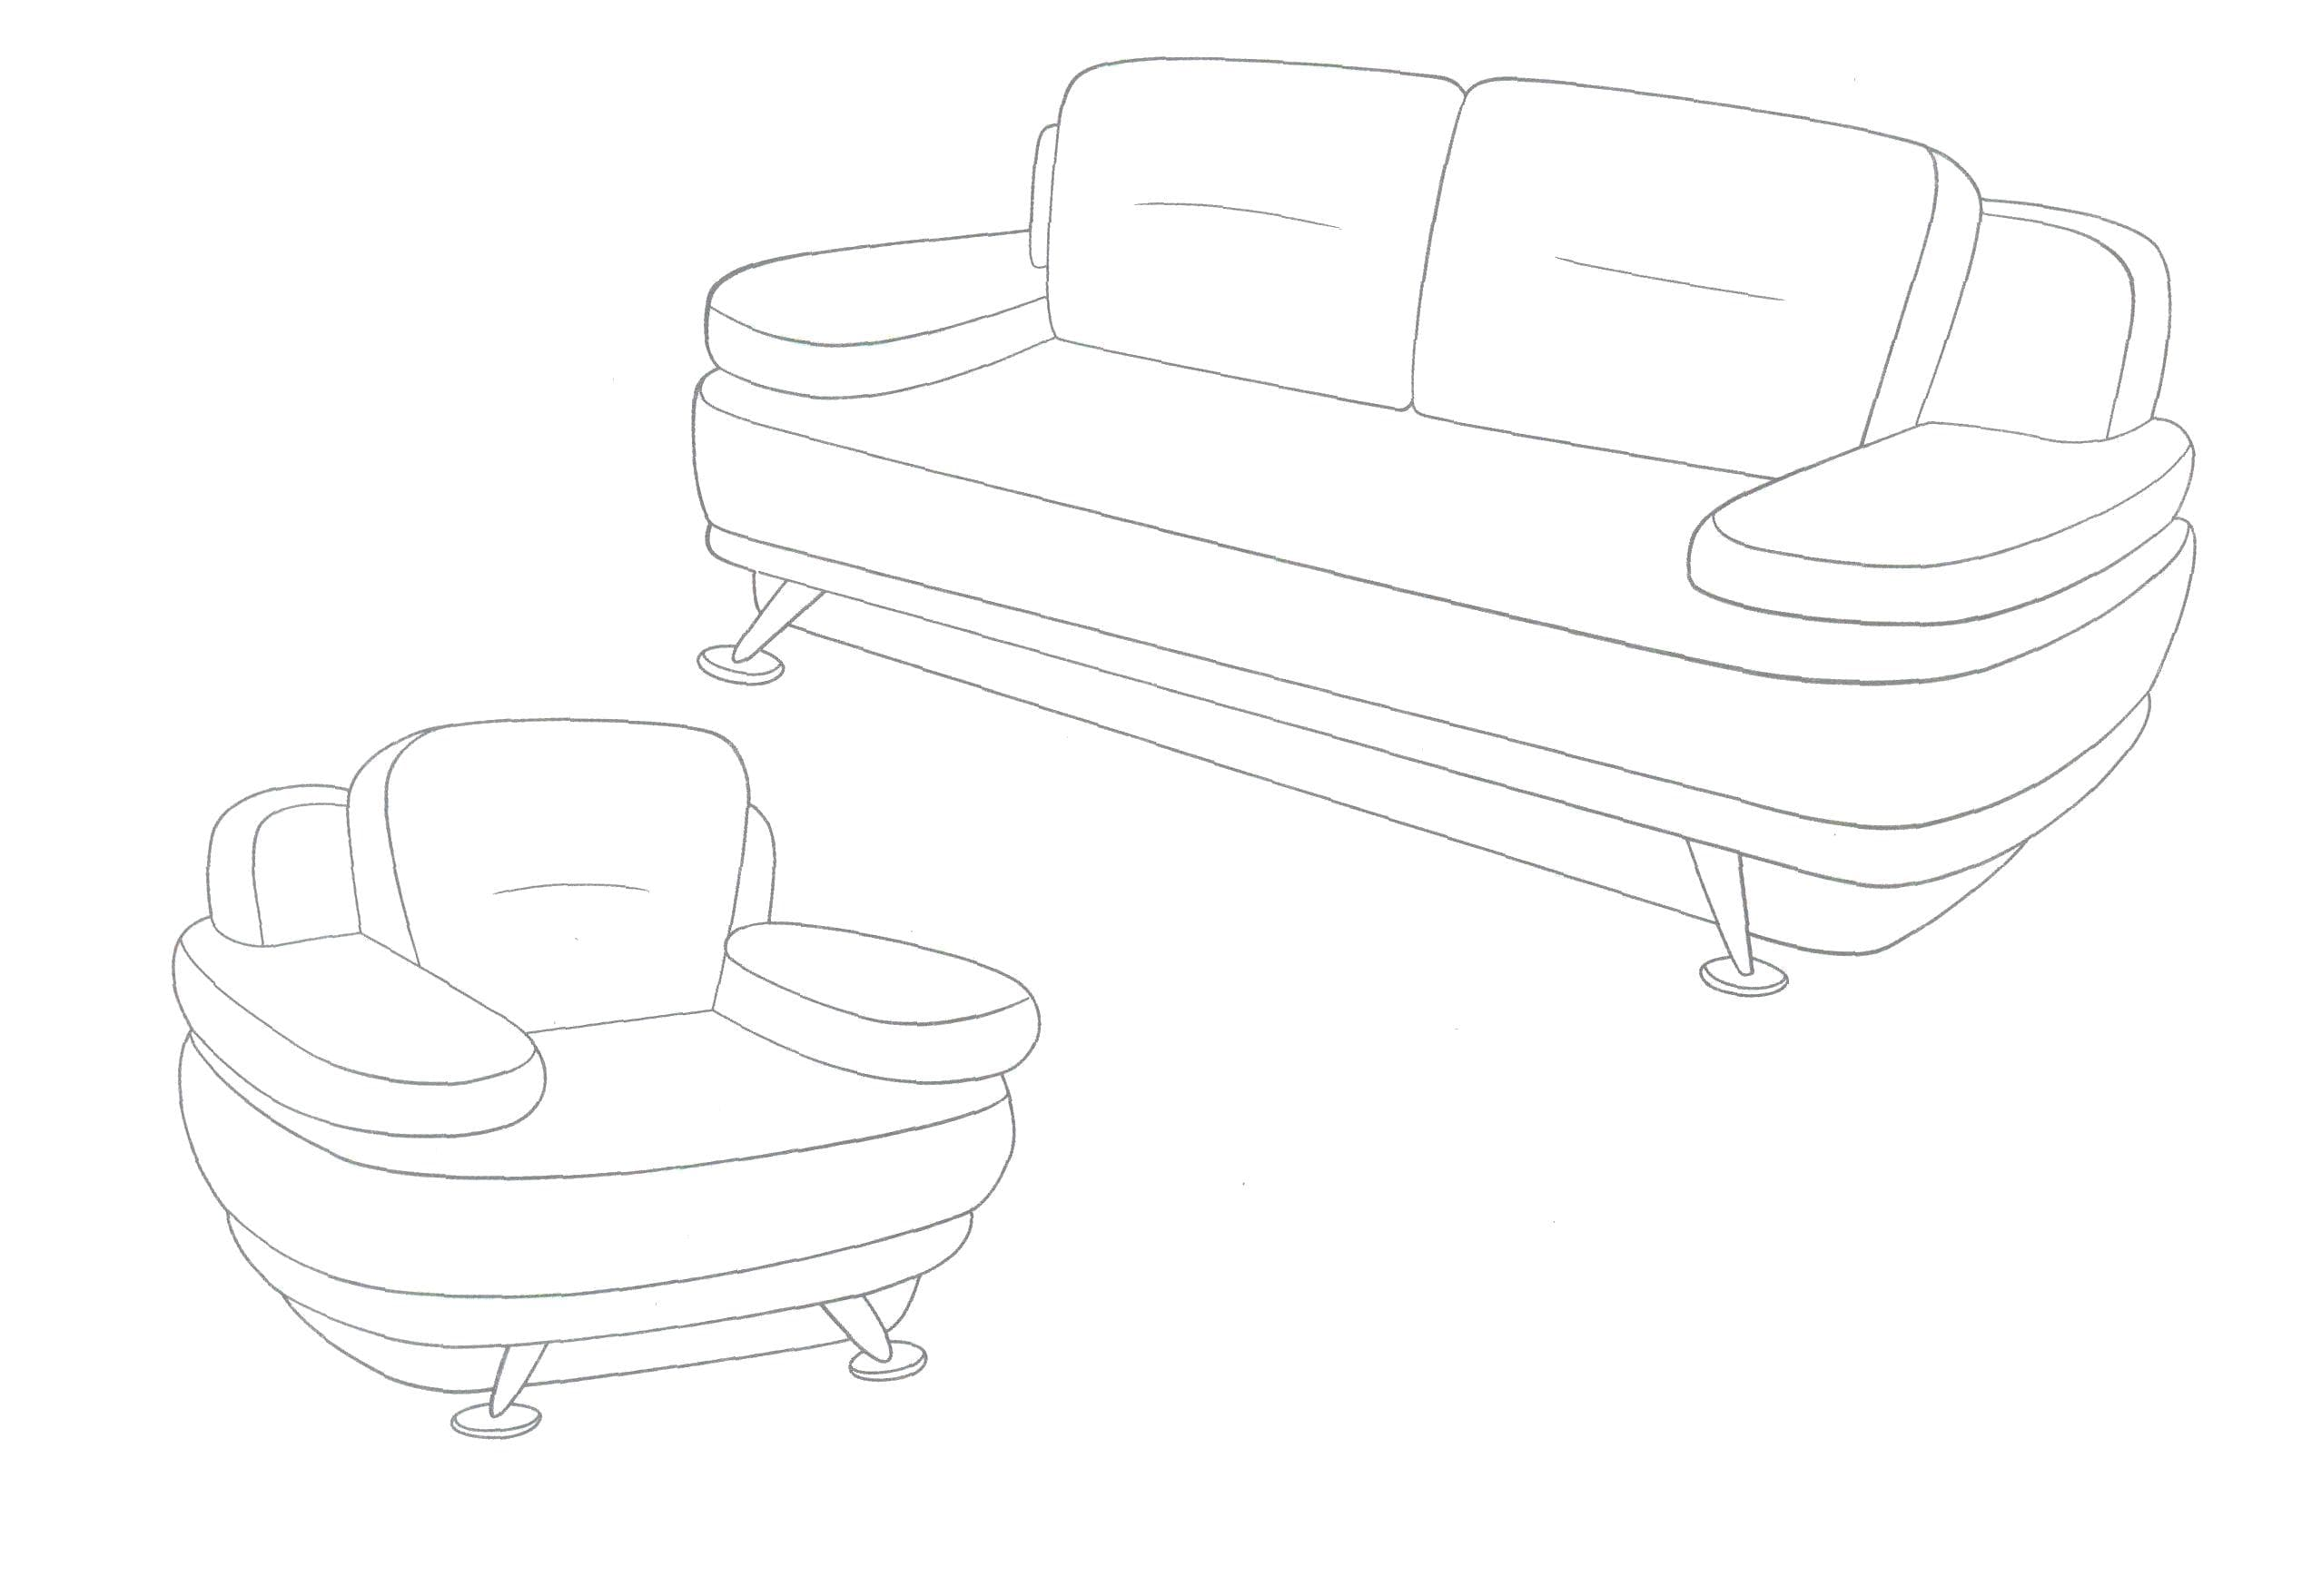 sofa coloring pages - photo#43